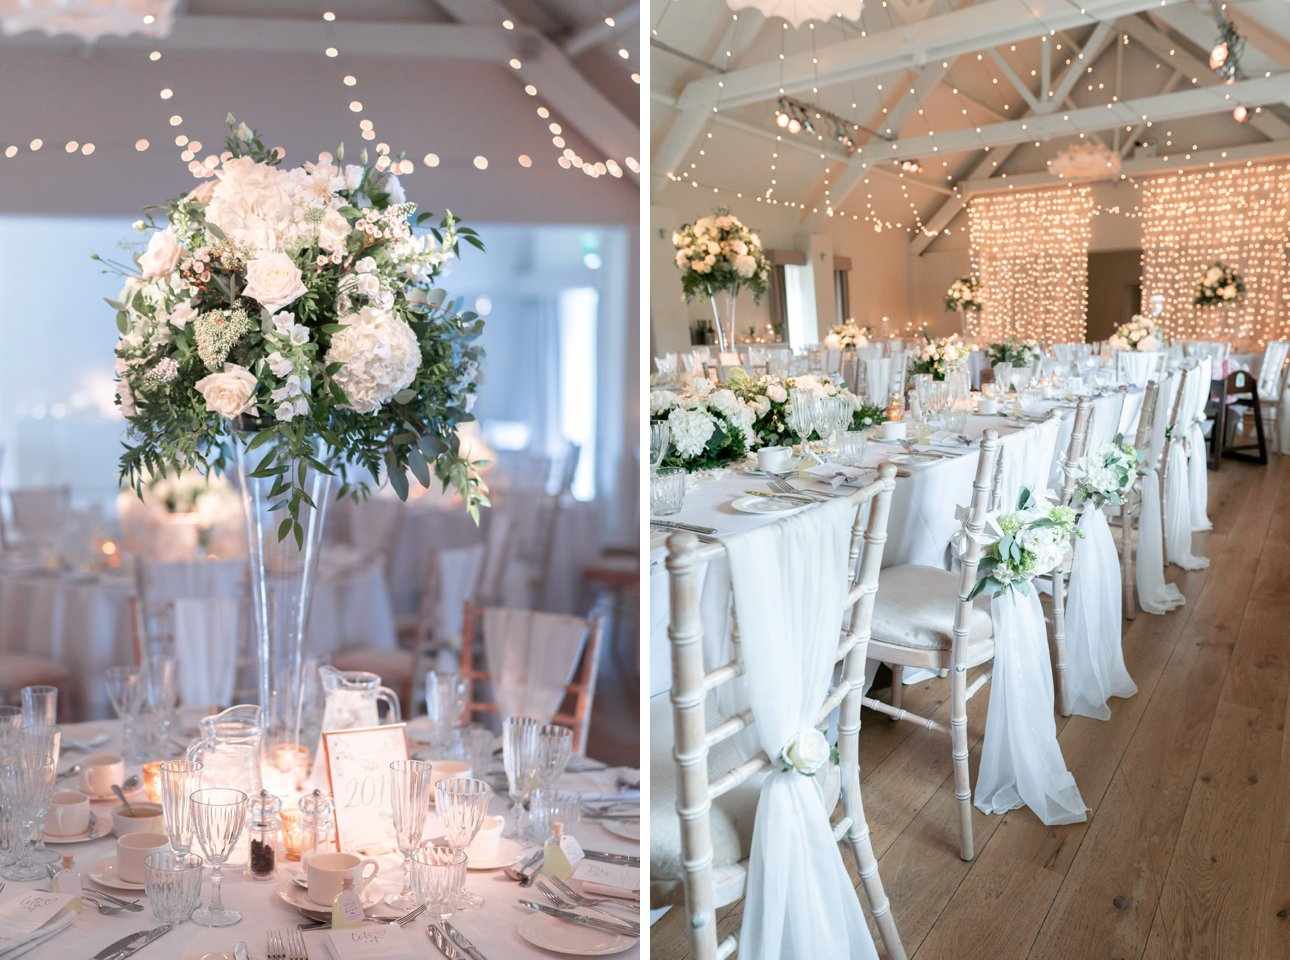 White summer floral arrangements by Buckinghamshire florist Rebecca Marsala at Stoke Place Slough.